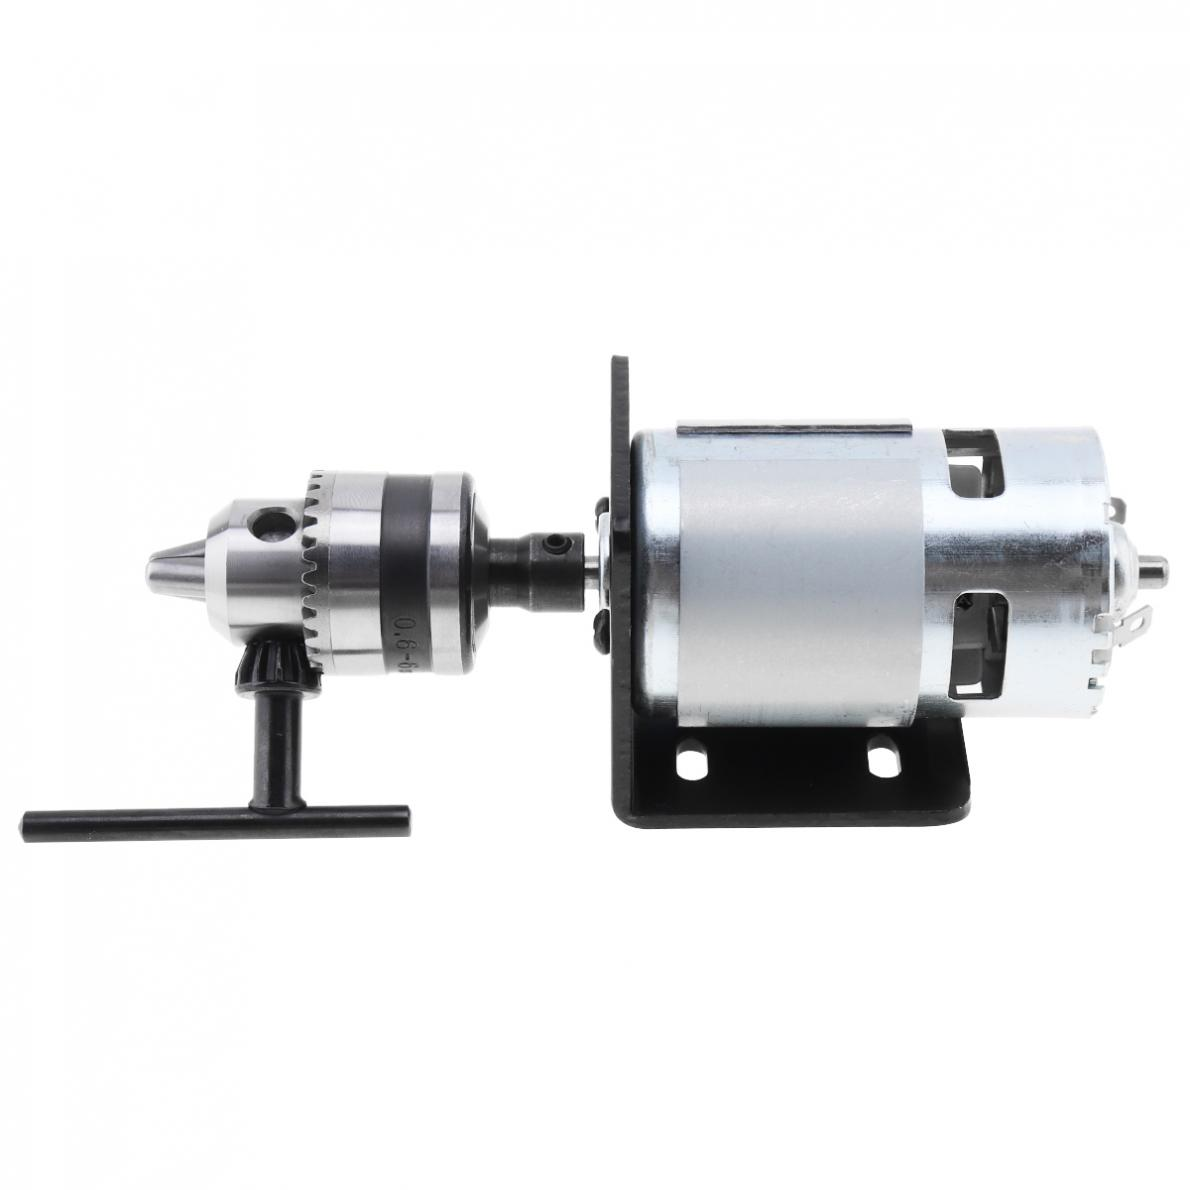 1set 12-24V 775 Lathe Press Motor With B10 Drill Chuck And Mounting Bracket